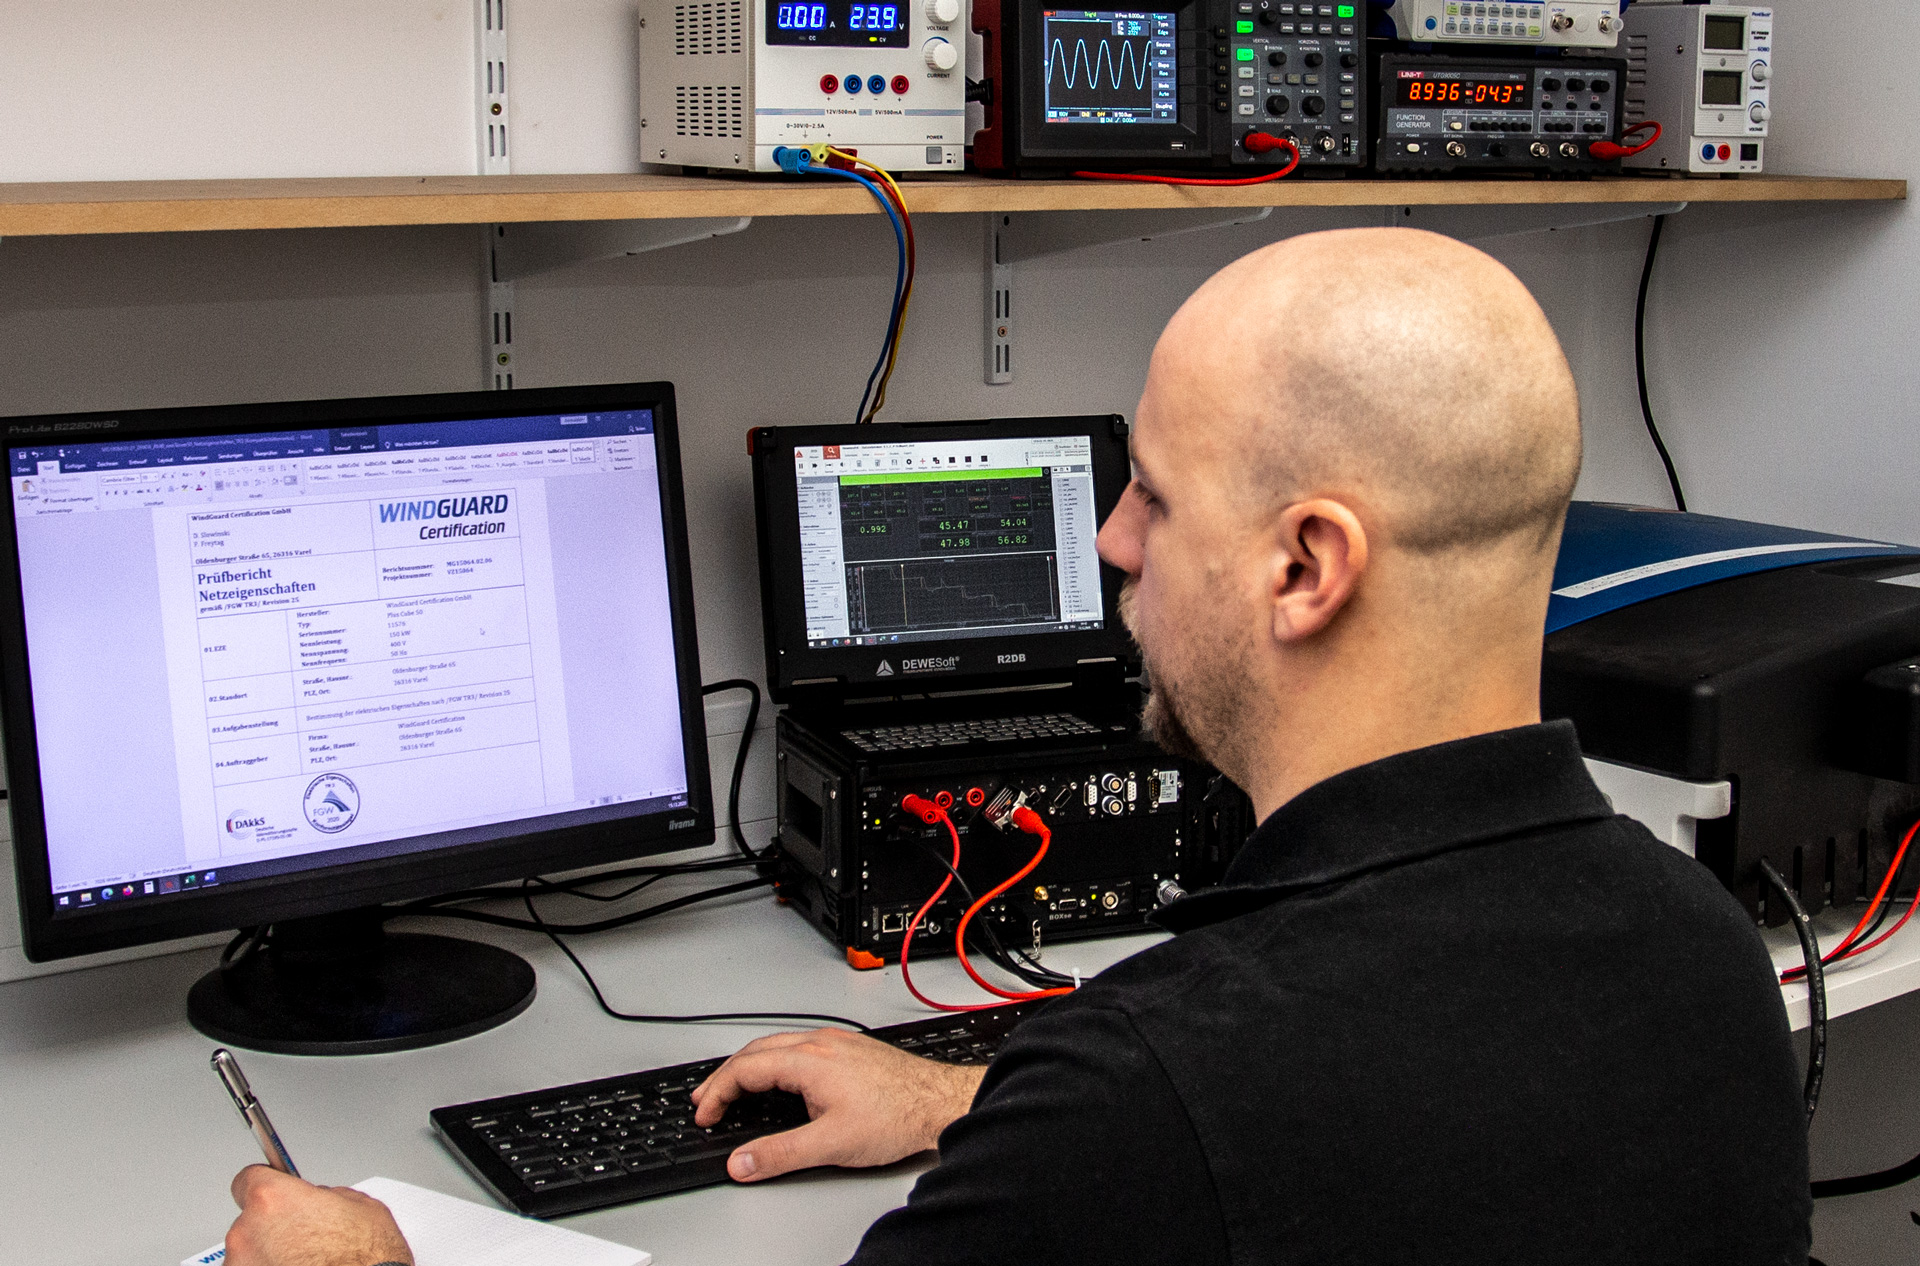 WindGuard Certification - Accredited Test Laboratory